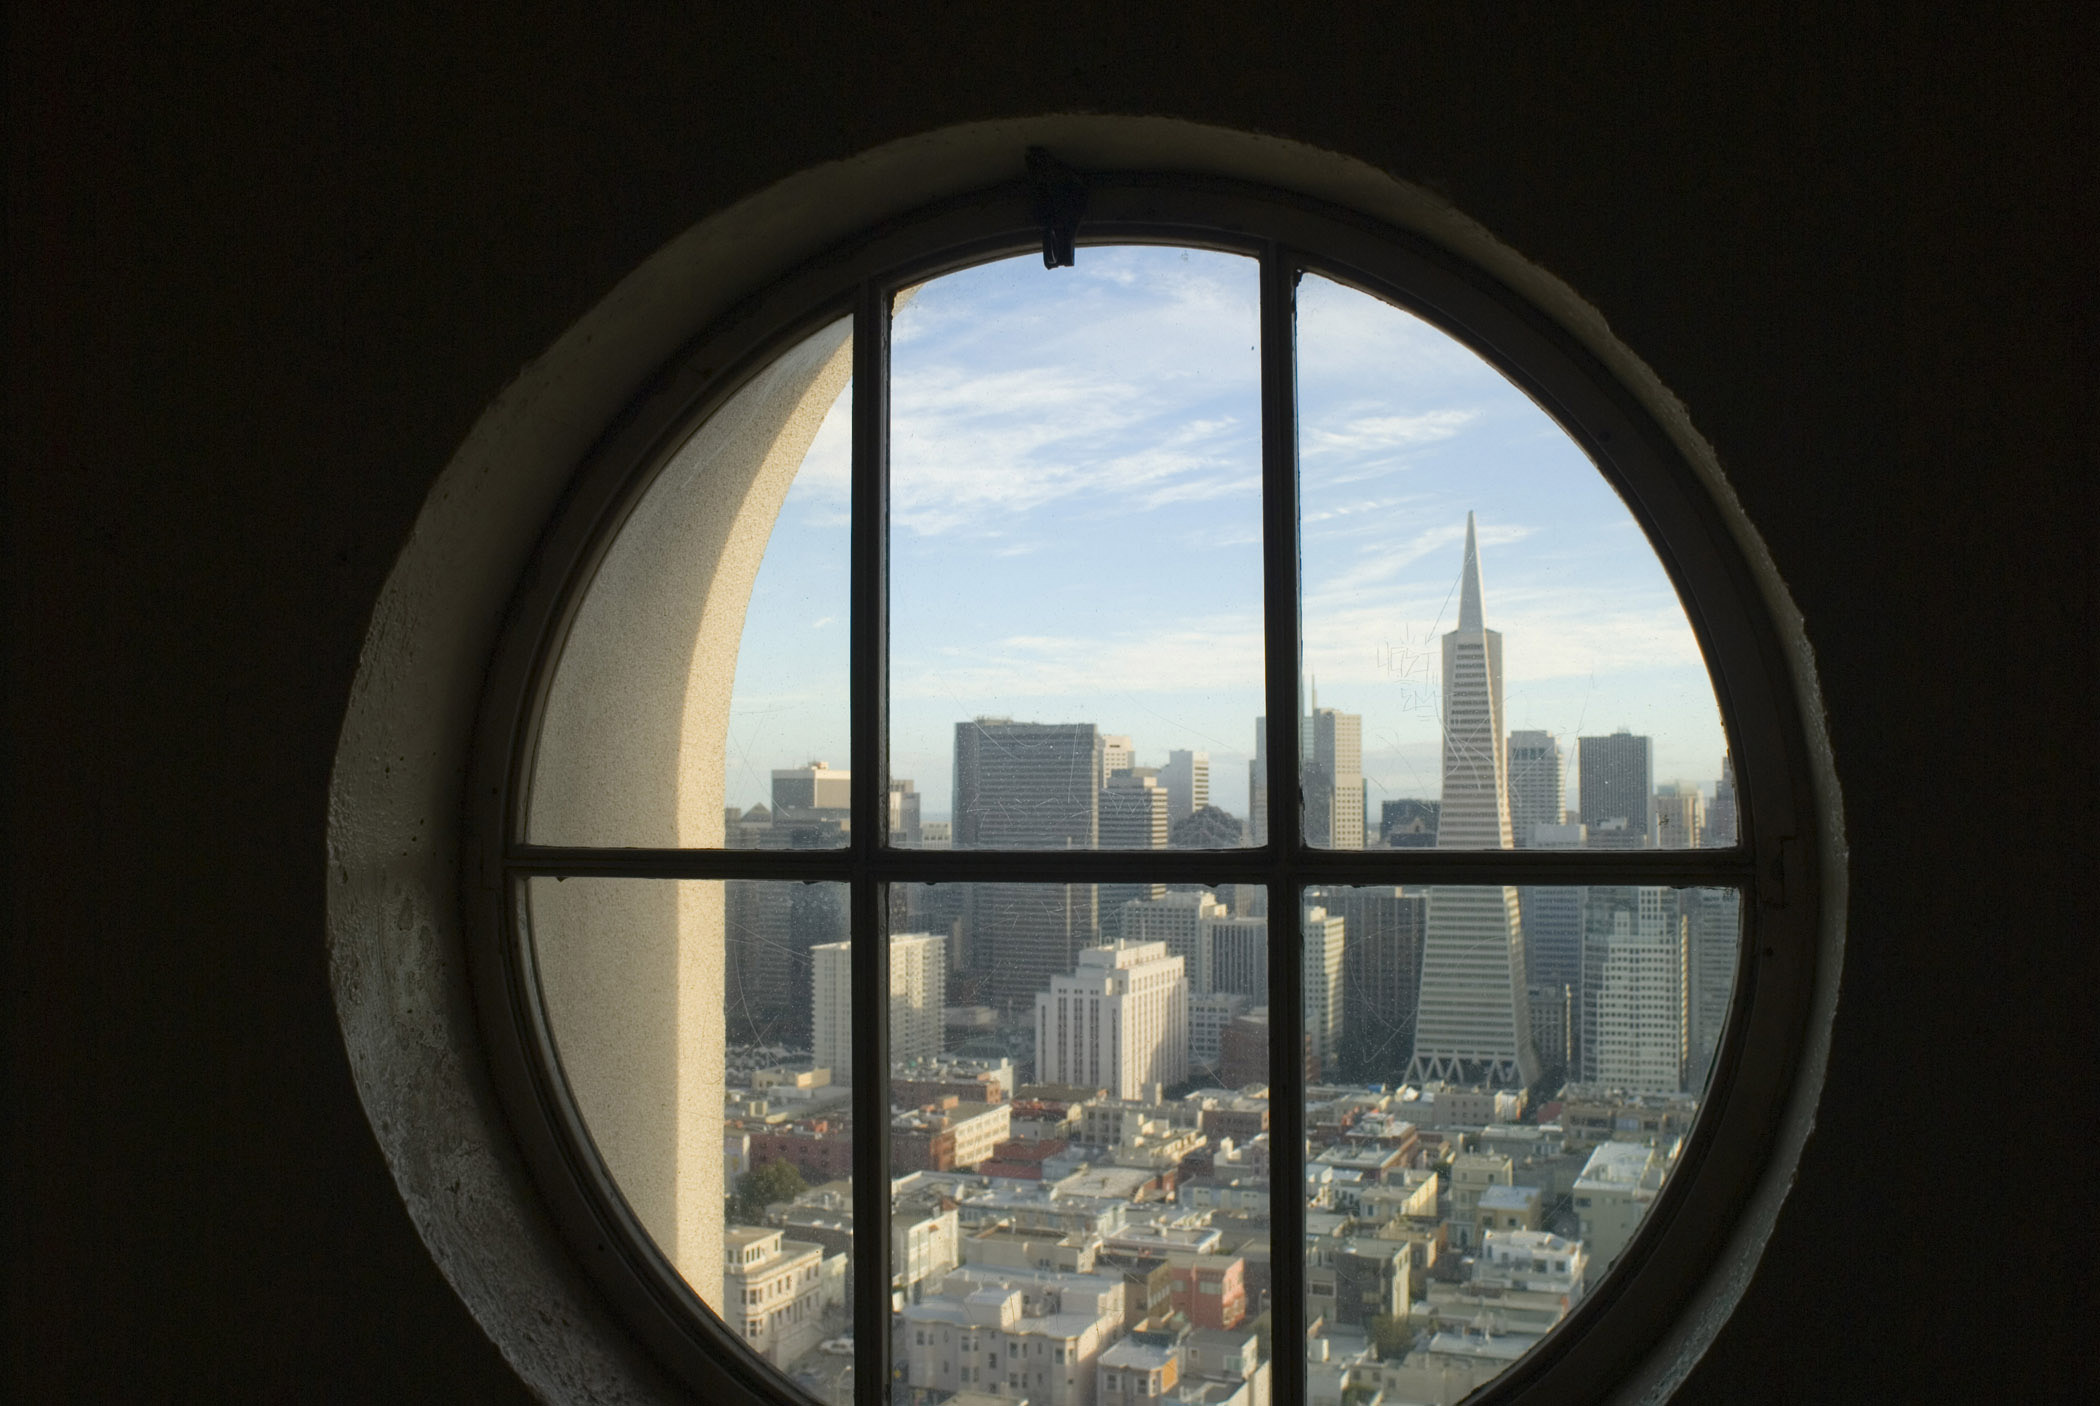 View of San Francsico from The Lilian Coit Memorial Tower looking through a round window at the CBD